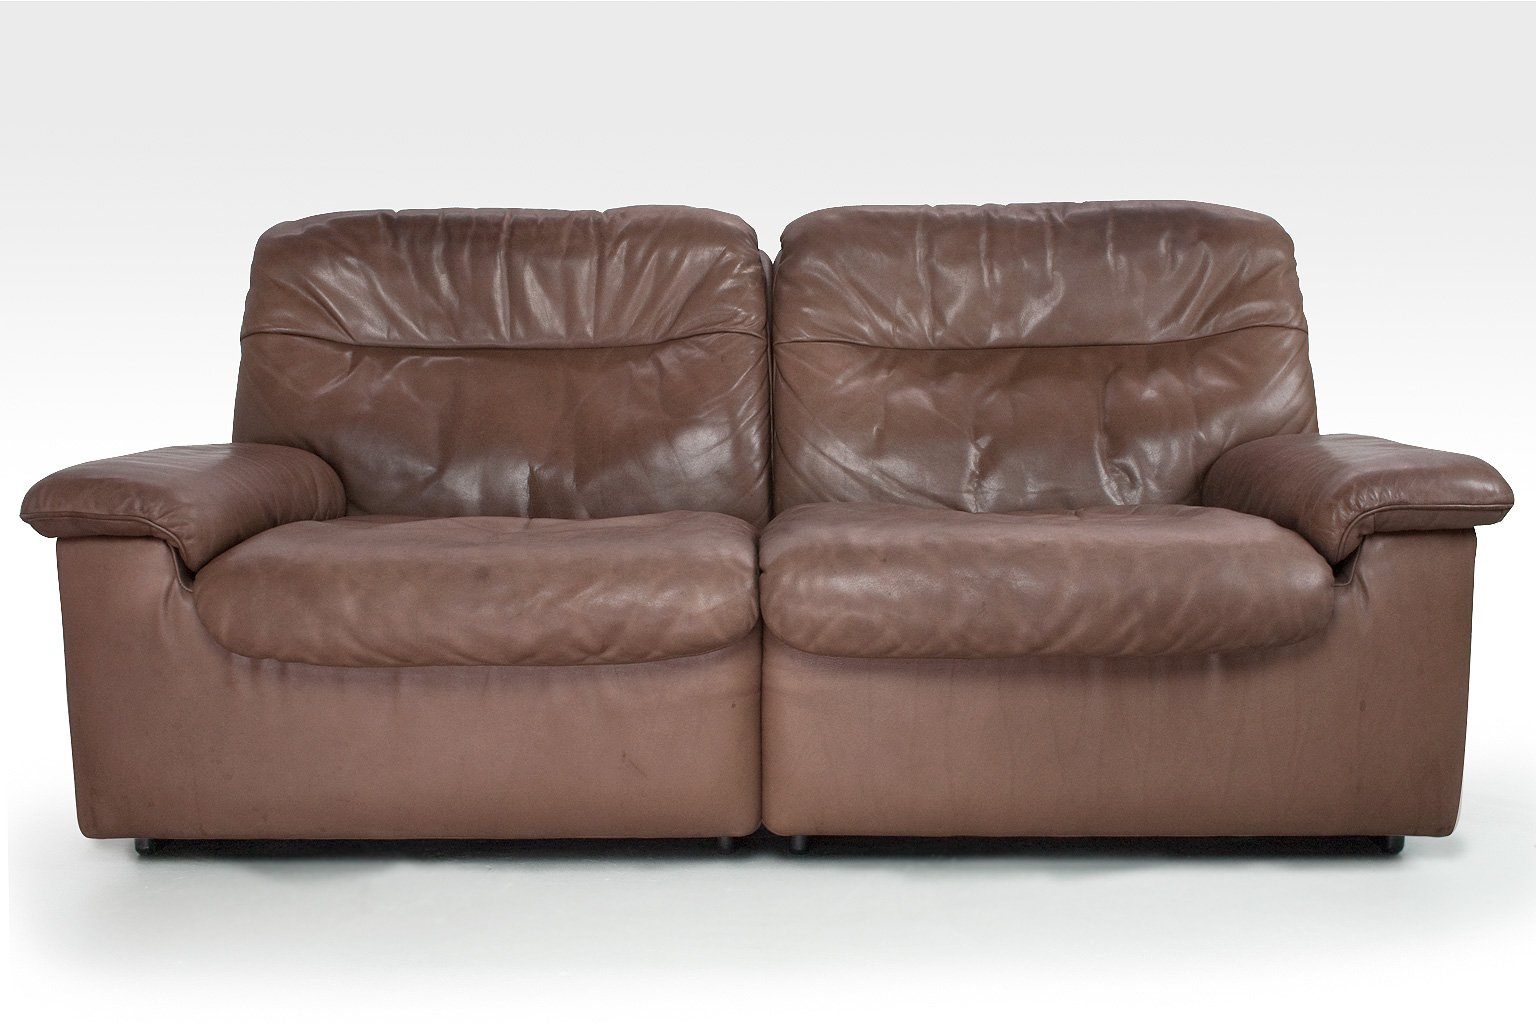 ds 66 2 sitzer ledersofa von de sede 1970er bei pamono kaufen. Black Bedroom Furniture Sets. Home Design Ideas